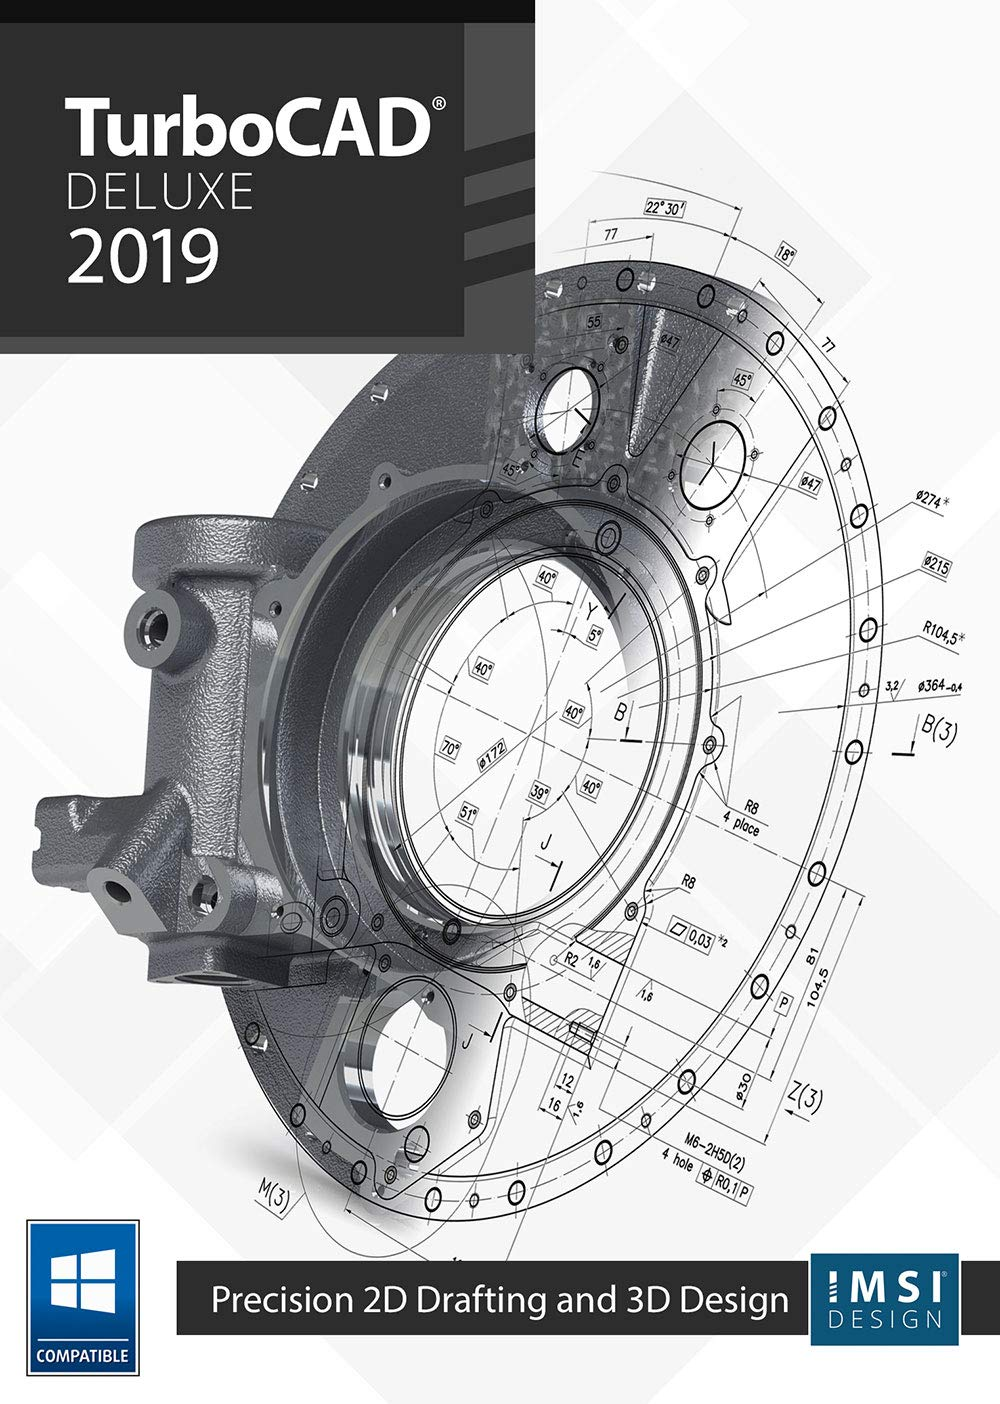 TurboCAD 2019 Deluxe [PC Download] by IMSI Design, LLC.